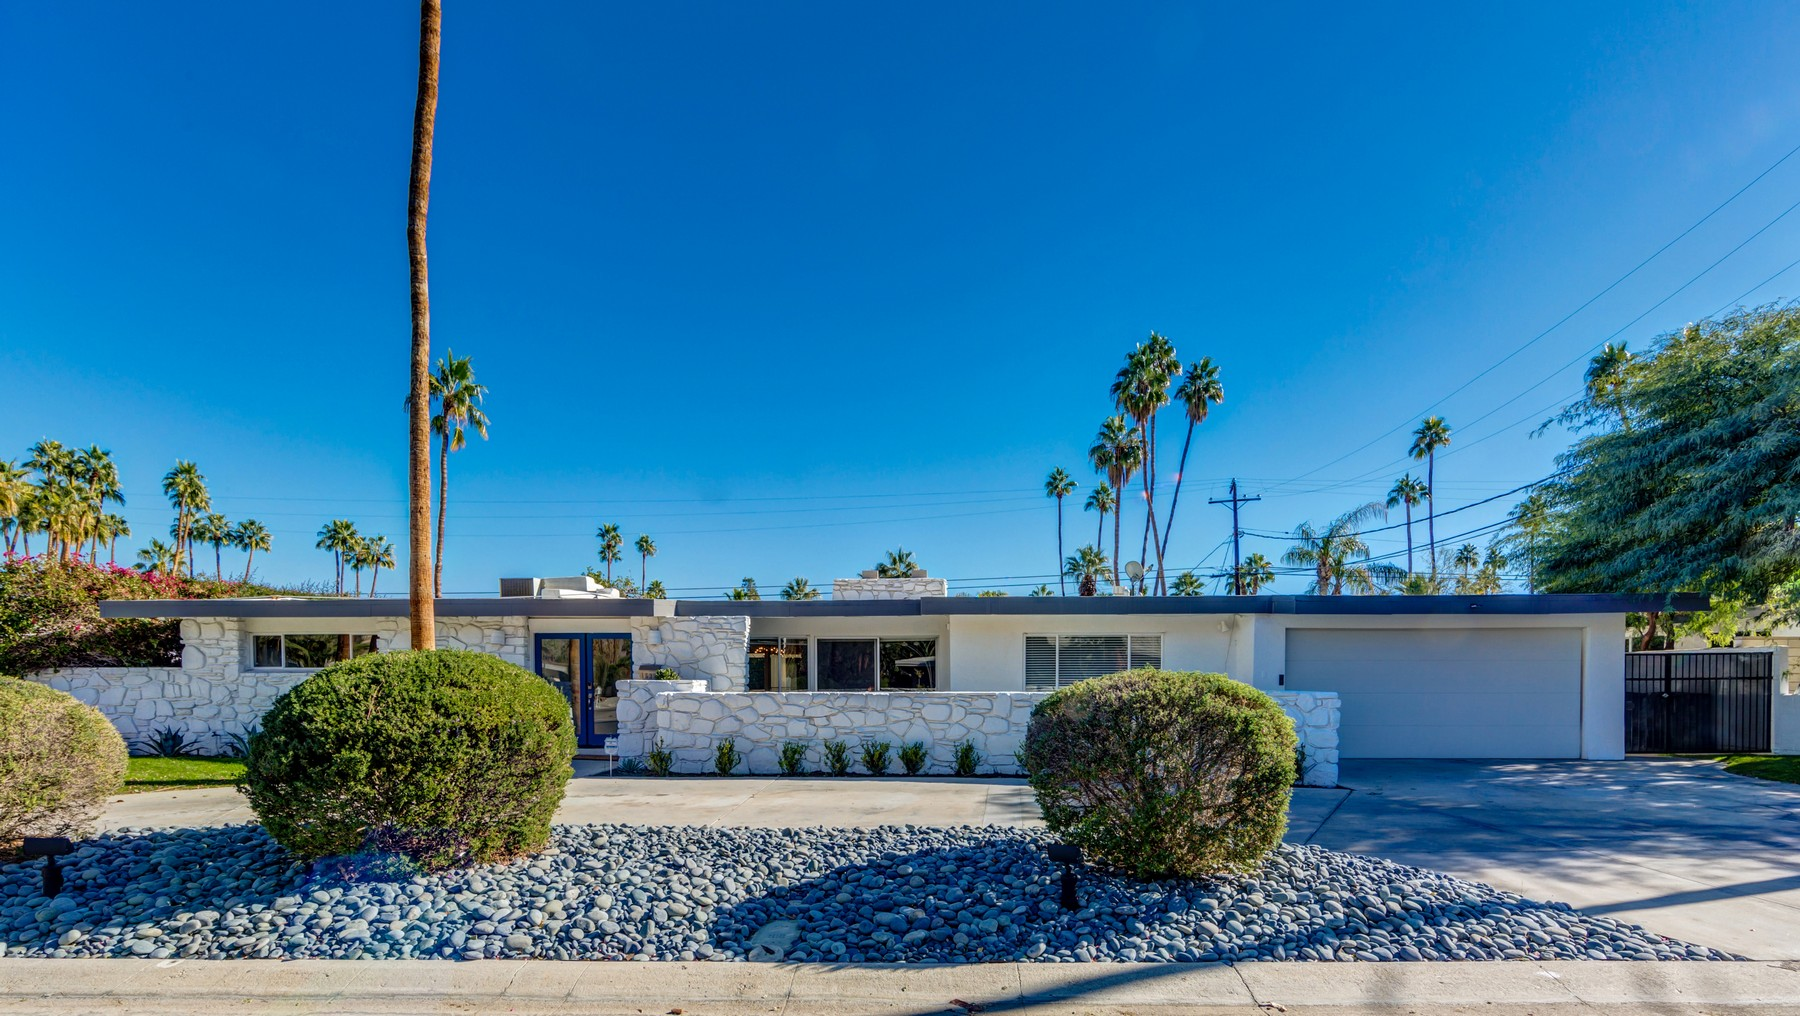 Single Family Home for Sale at 1632 S Sagebrush Palm Springs, California 92234 United States